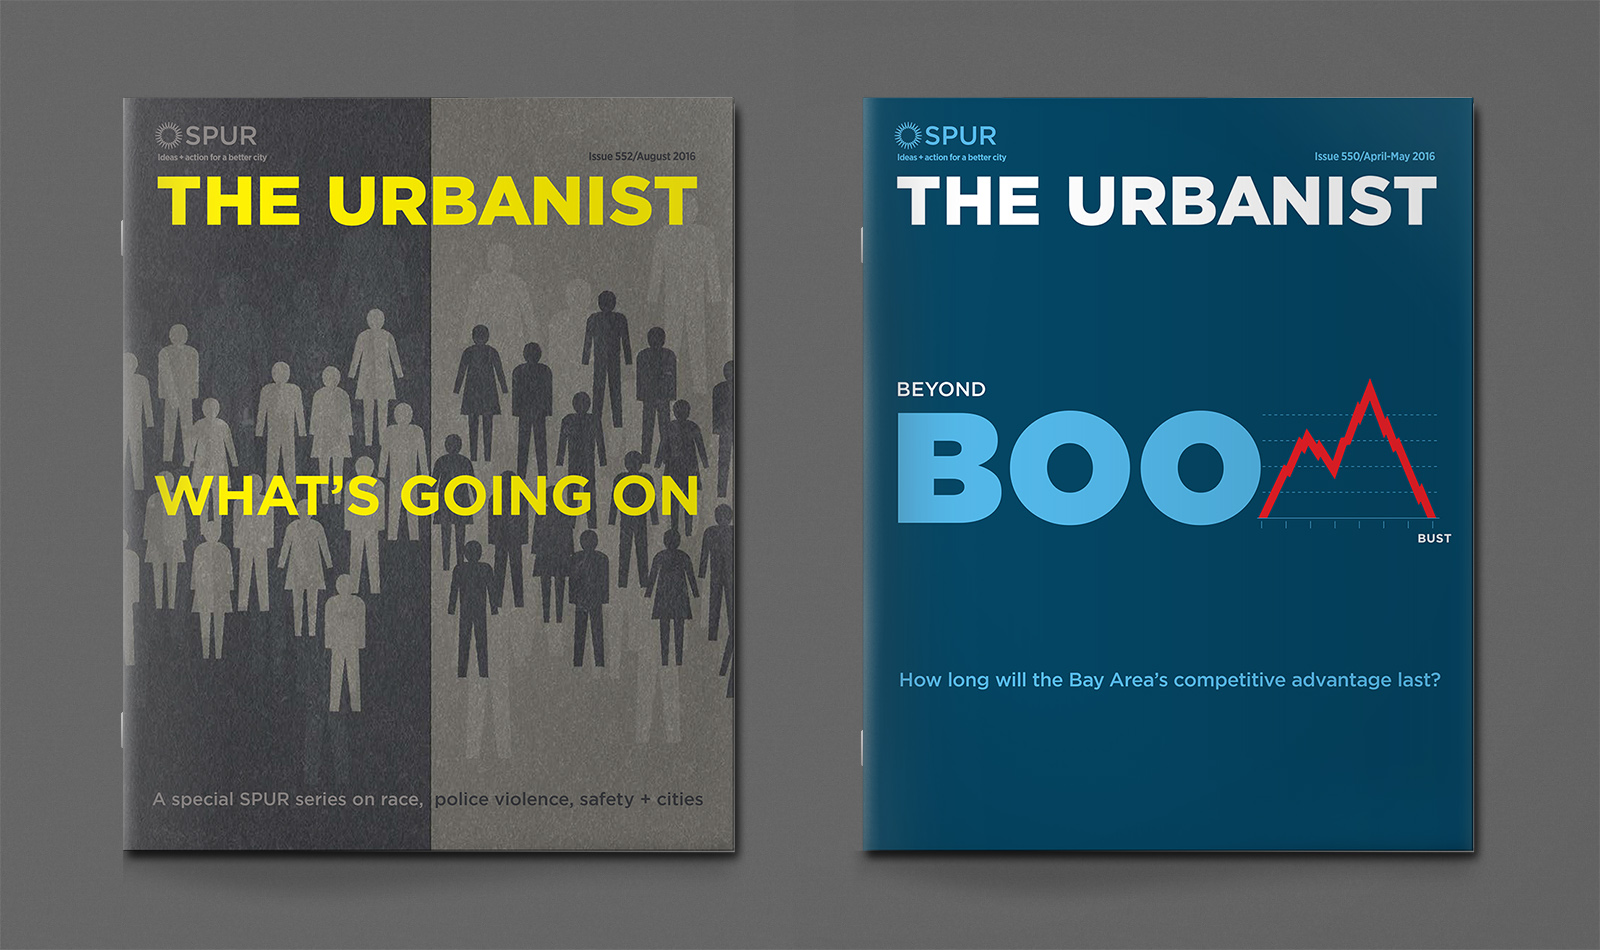 urbanist-spur-covers-2016-new